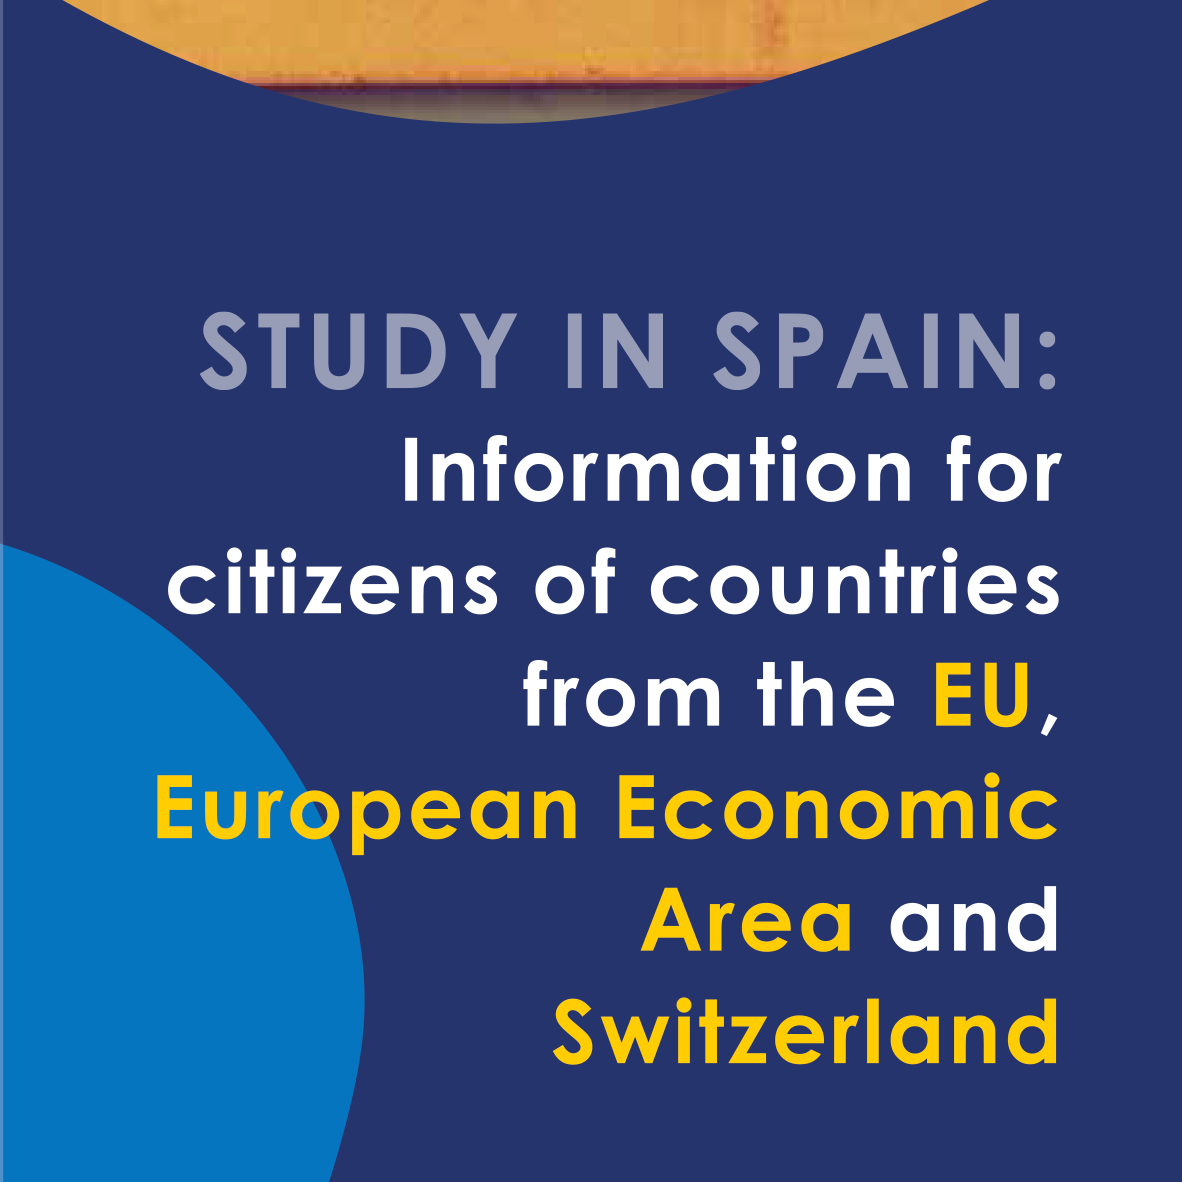 Study in Spain: Information for citizens of countries from the EU, European Economic Area and Switzerland